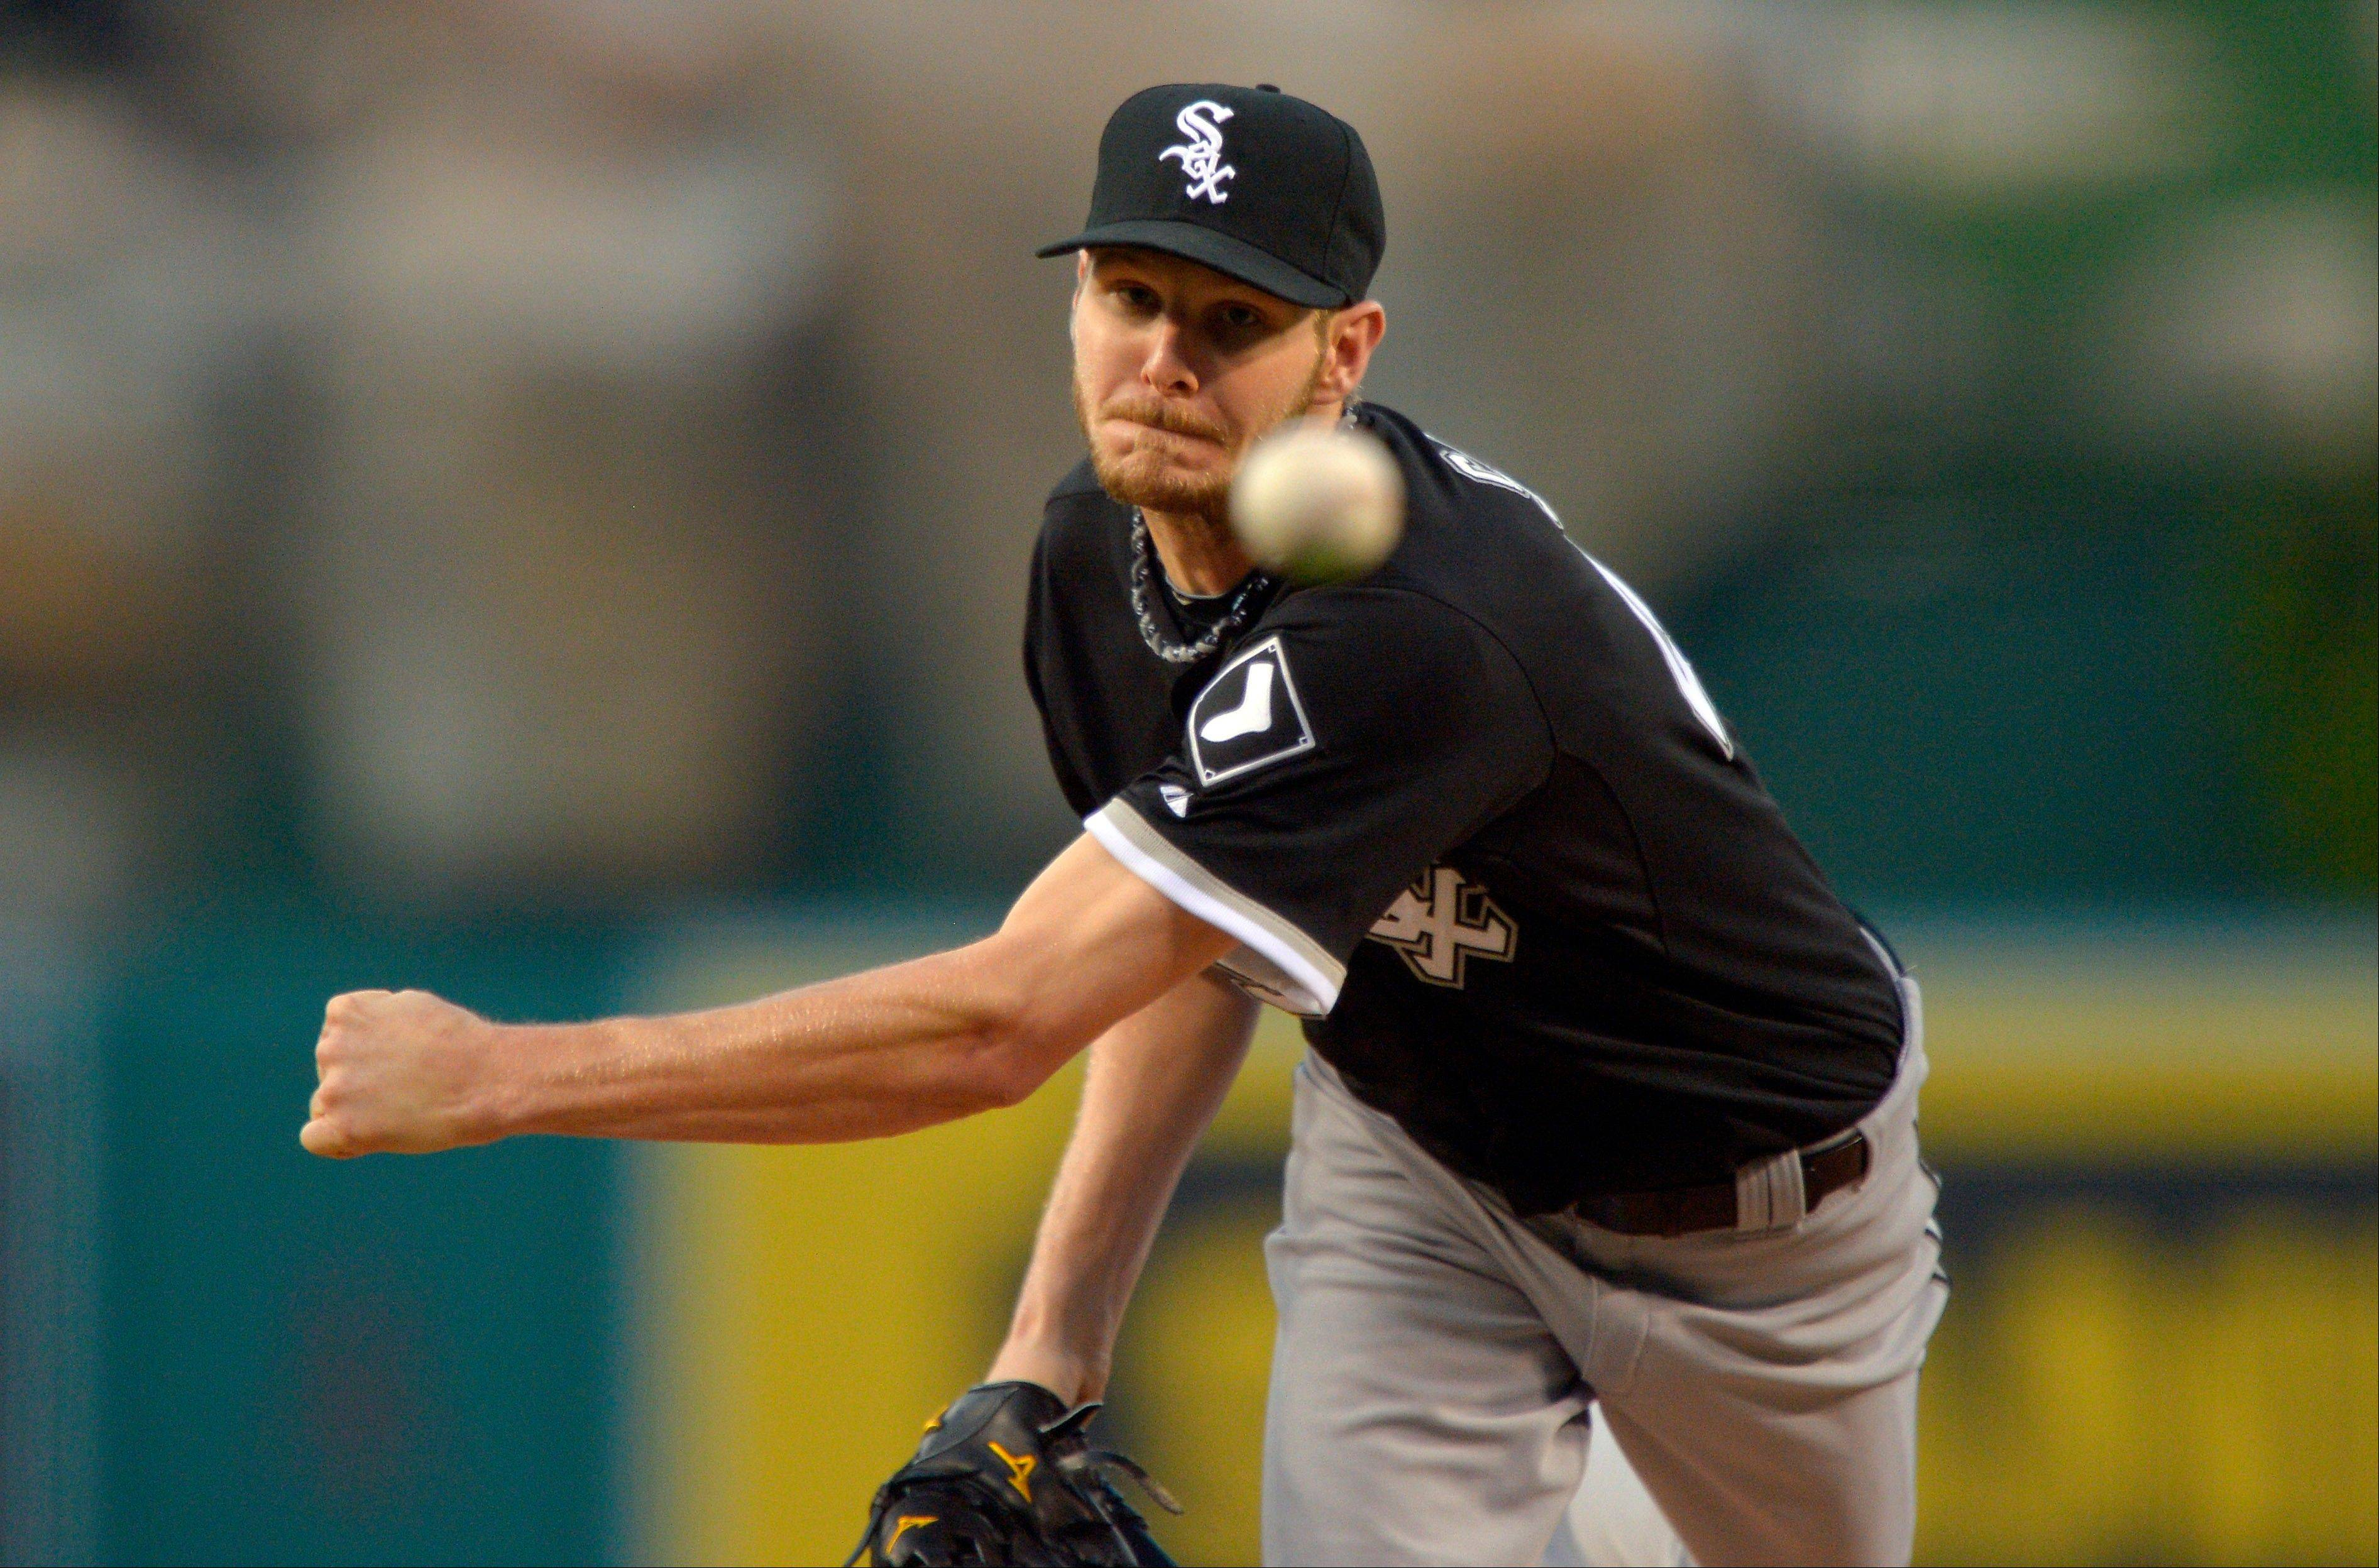 White Sox starter Chris Sale continued his mastery over the Angels, working 7 shutout innings while allowing 3 hits Friday night.